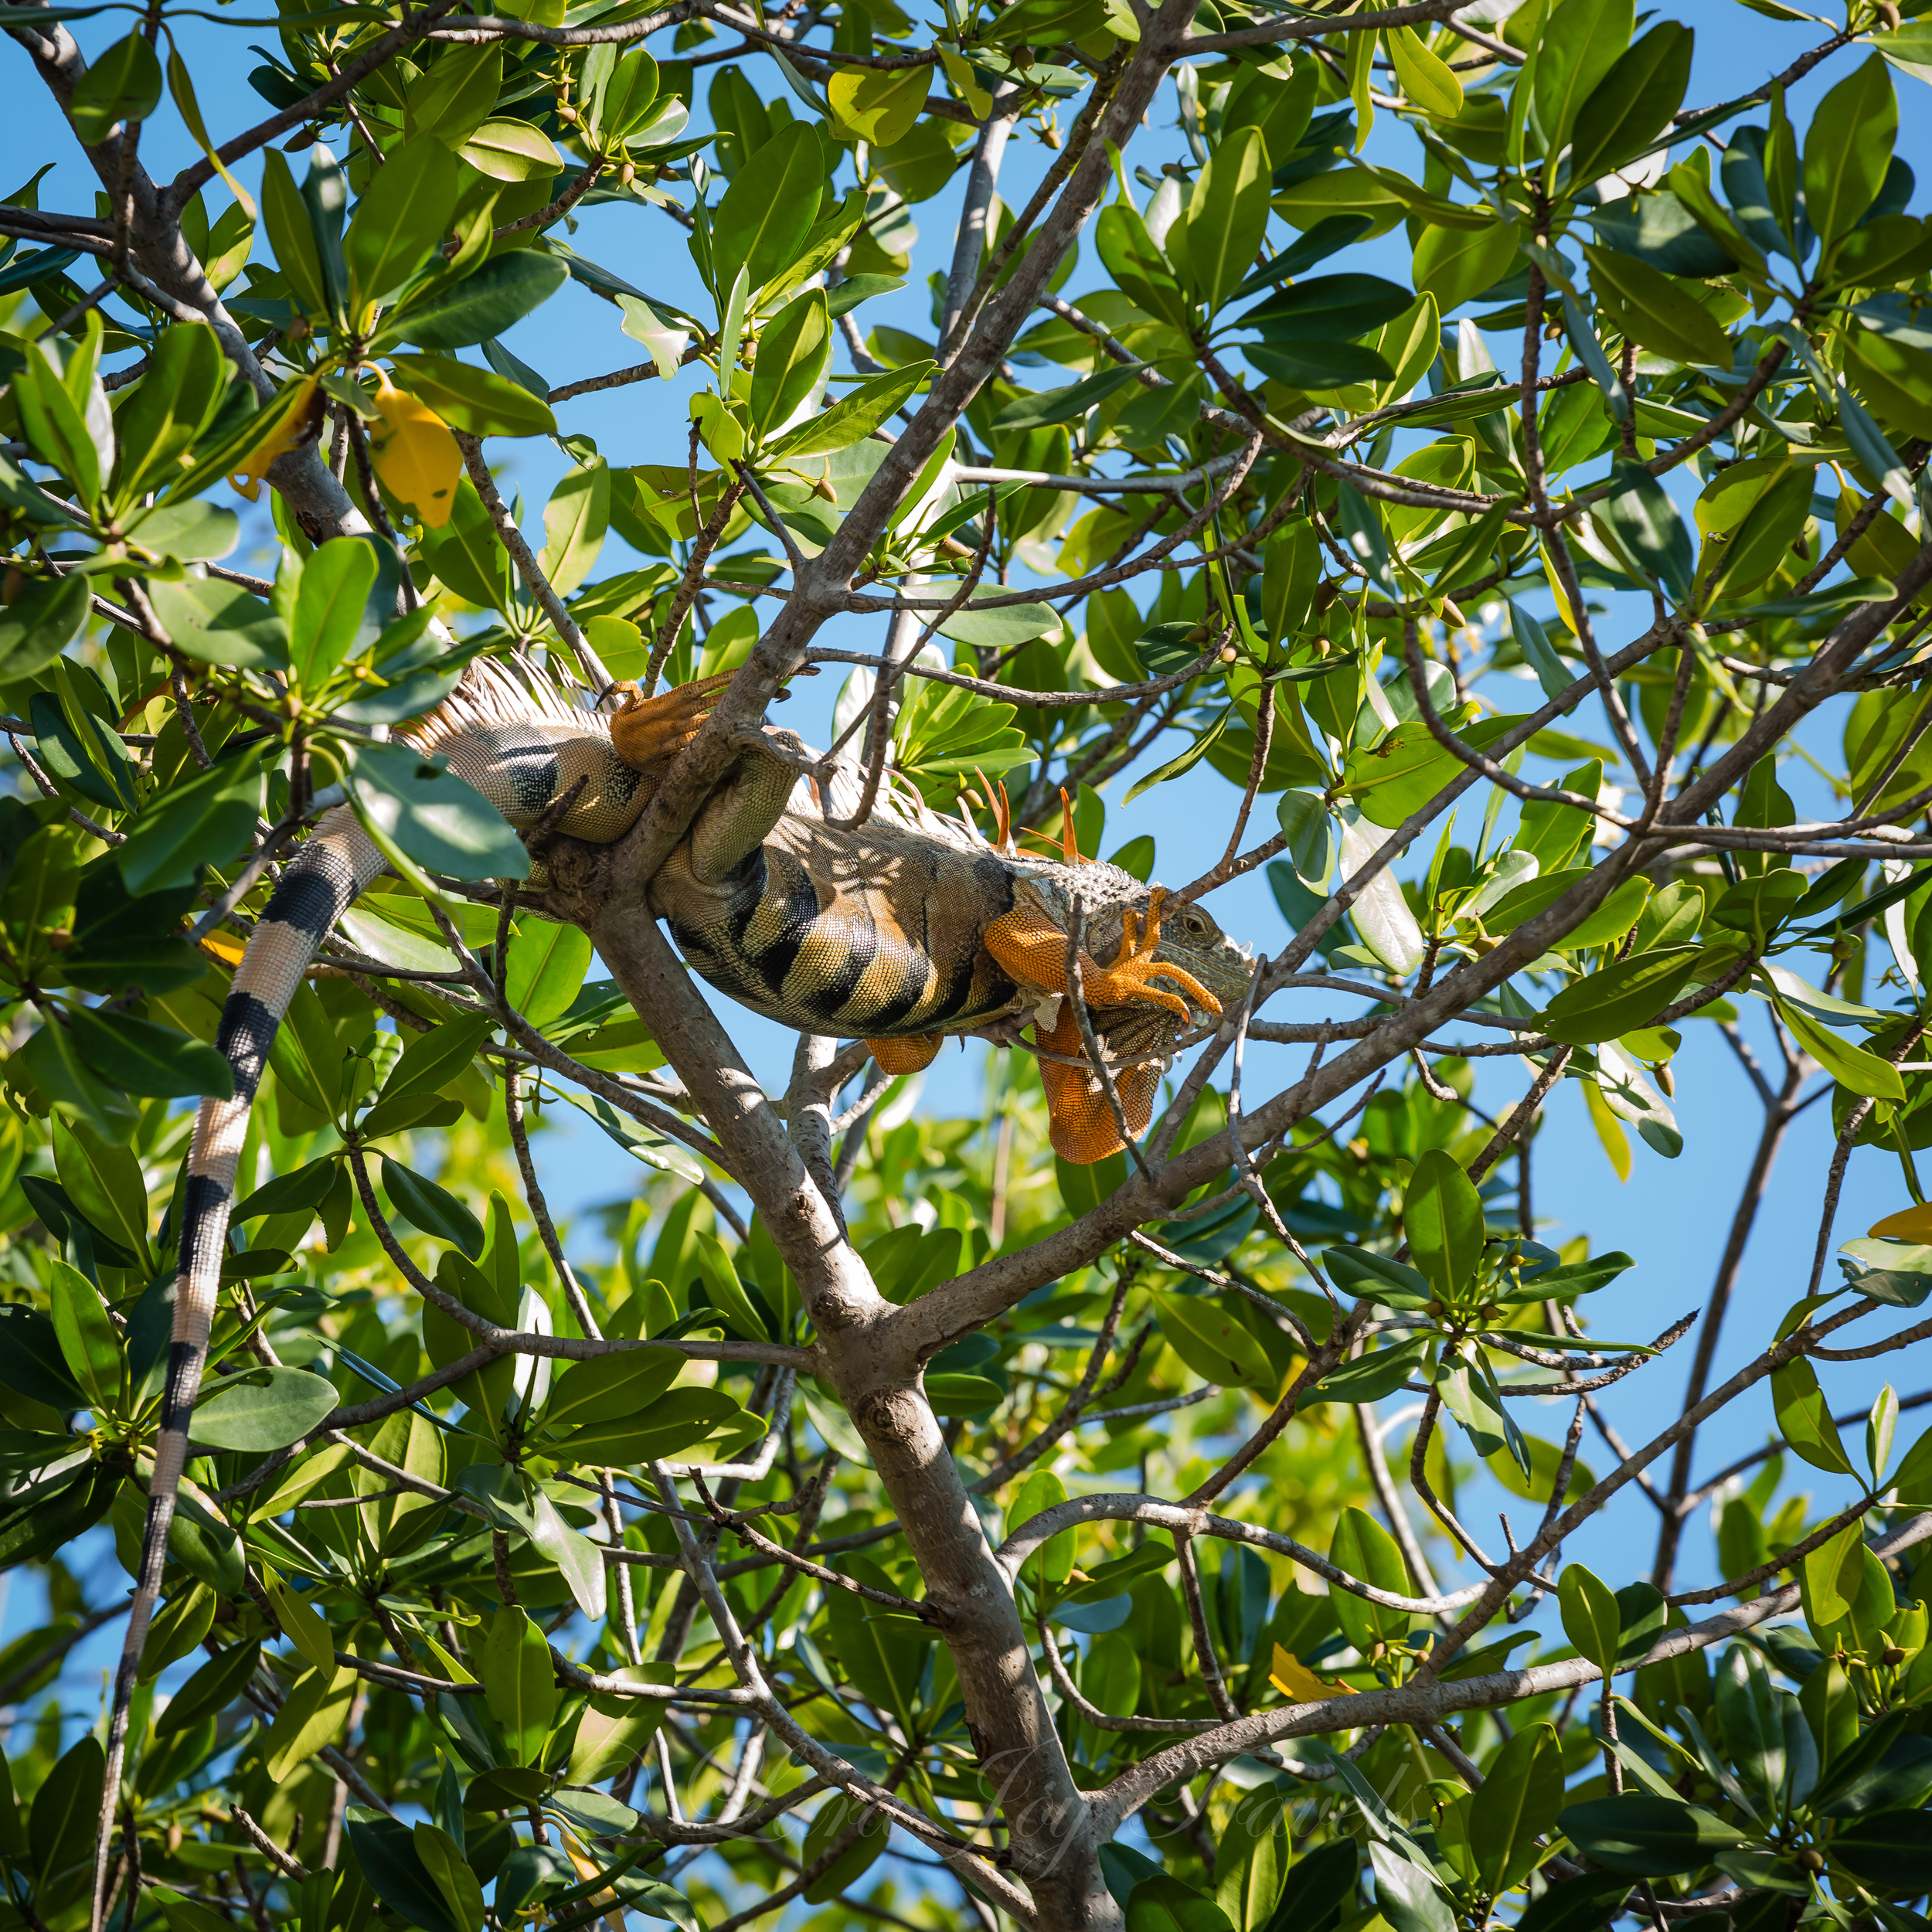 This guy was hanging out in a tree over the canal.  By this time, I knew that if I looked up, I'd see at least one iguana, and I shot him as our boat cruised beneath him.